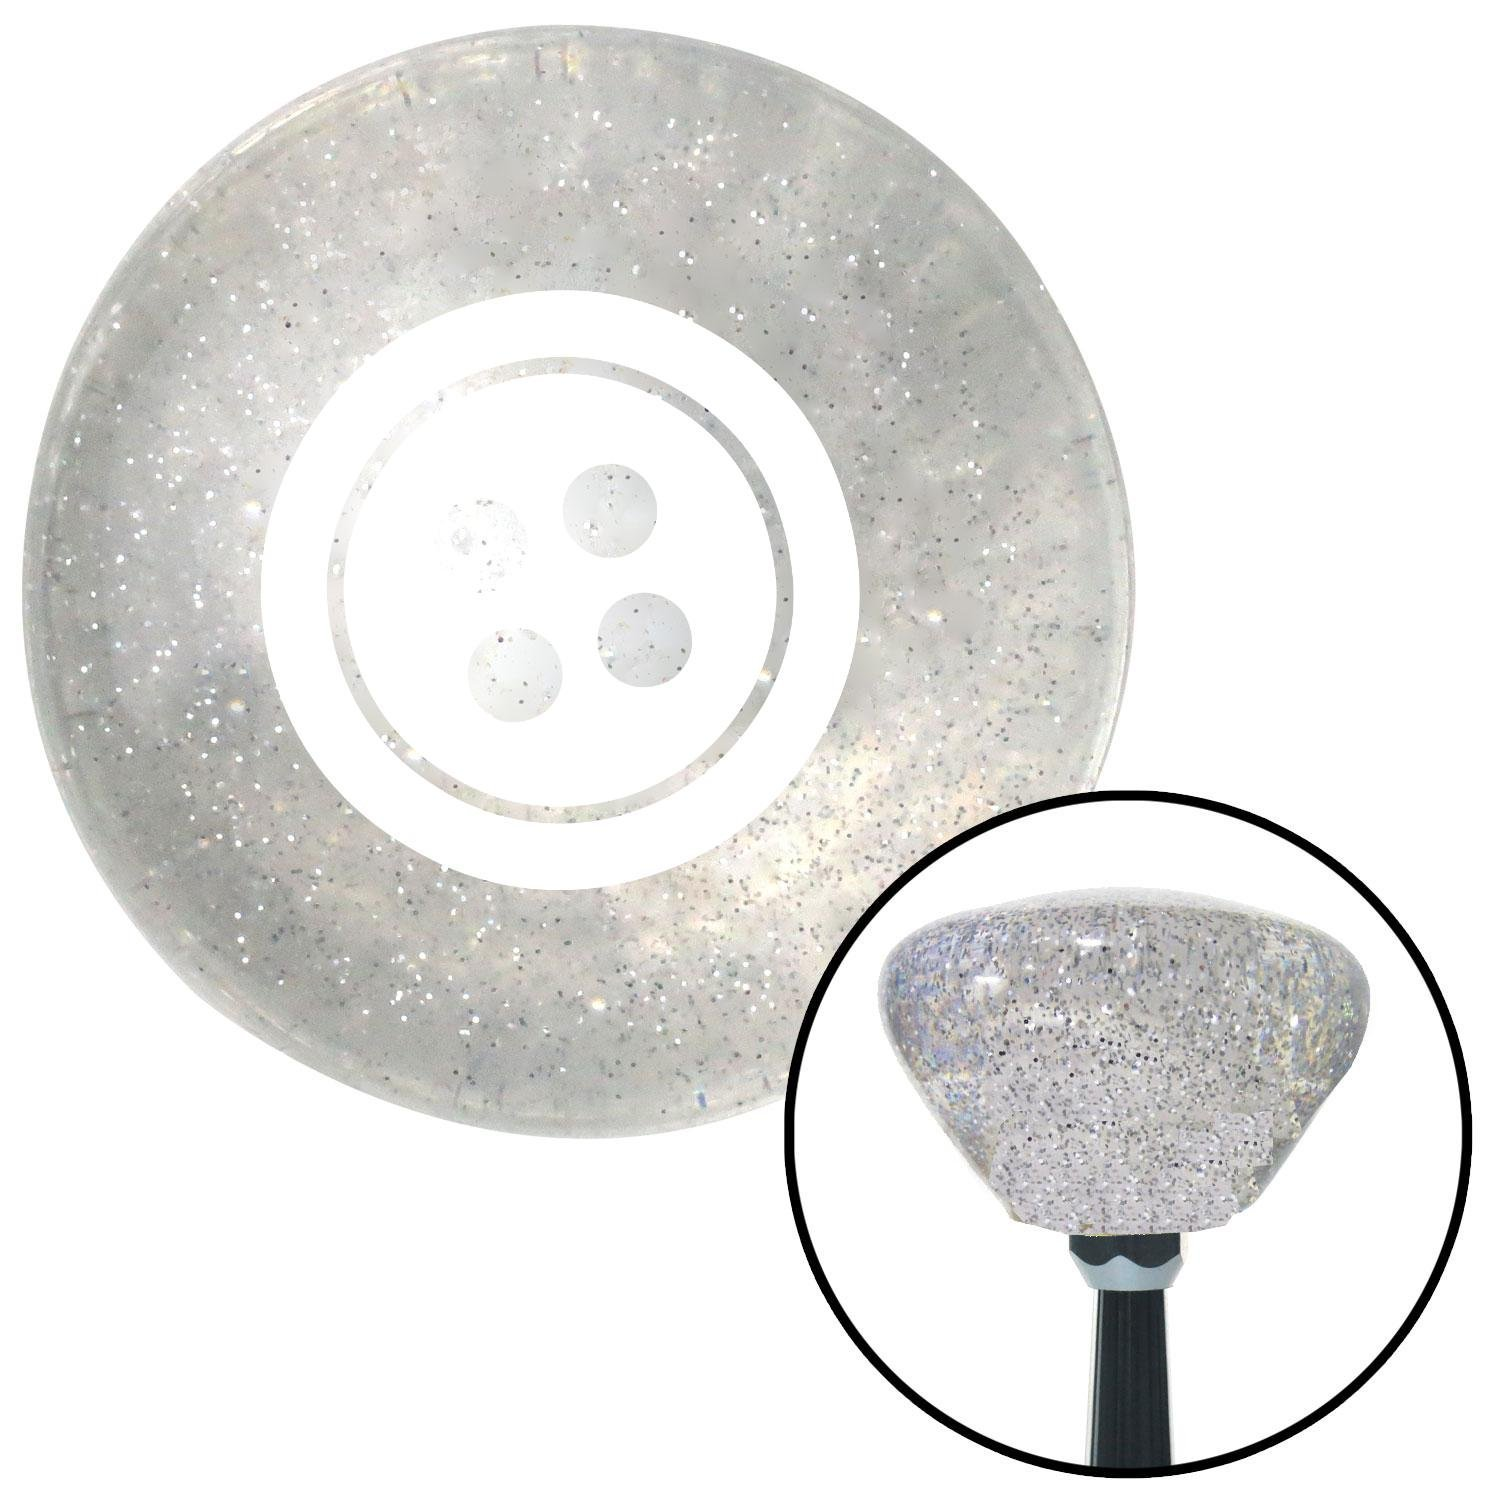 White Four Hole Button American Shifter 160820 Clear Retro Metal Flake Shift Knob with M16 x 1.5 Insert